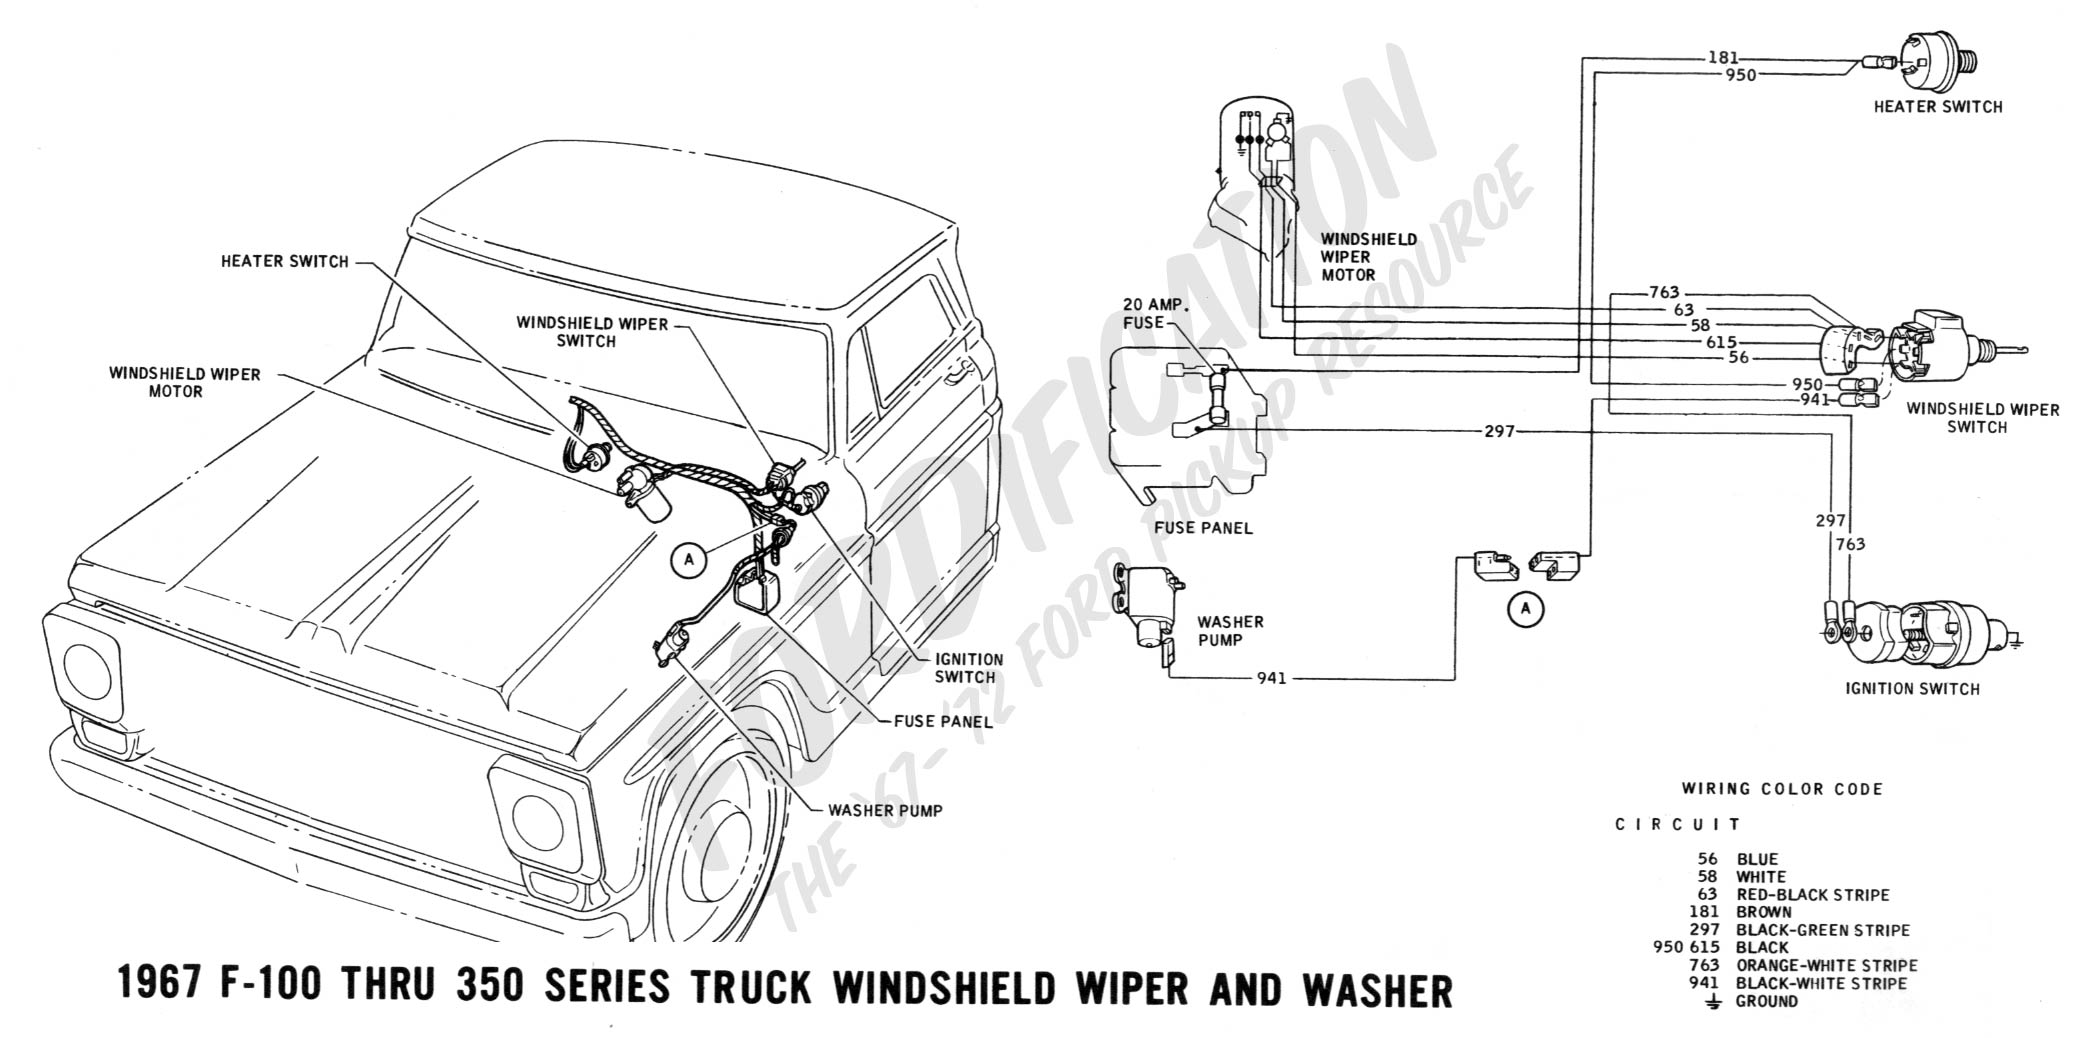 wiring 1967wipers wiper wiring diagram wiper wiring diagram for 1985 chevy vega 1999 ford explorer rear wiper wiring diagram at mifinder.co